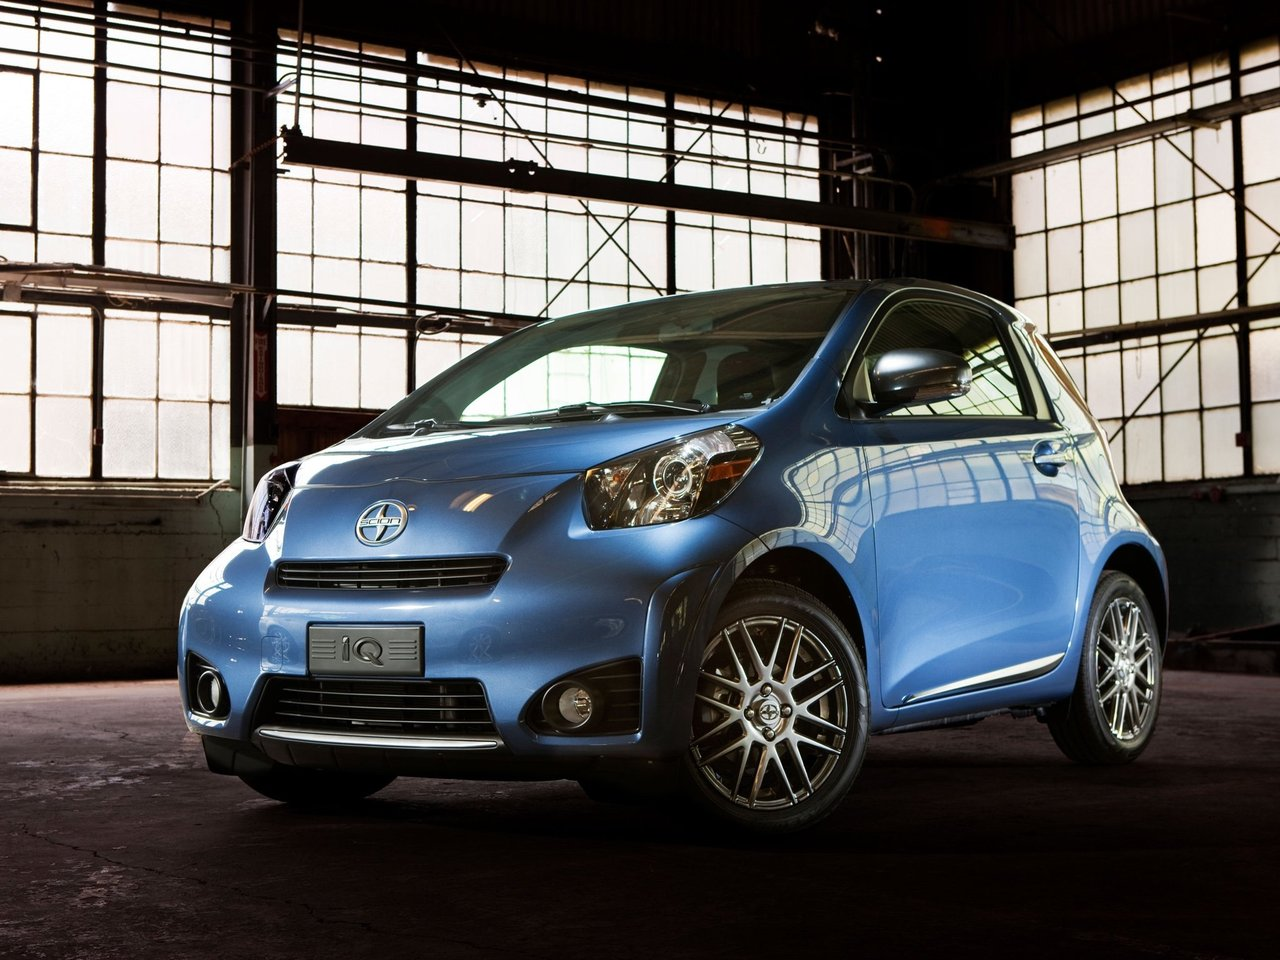 Автомобиль Scion iQ